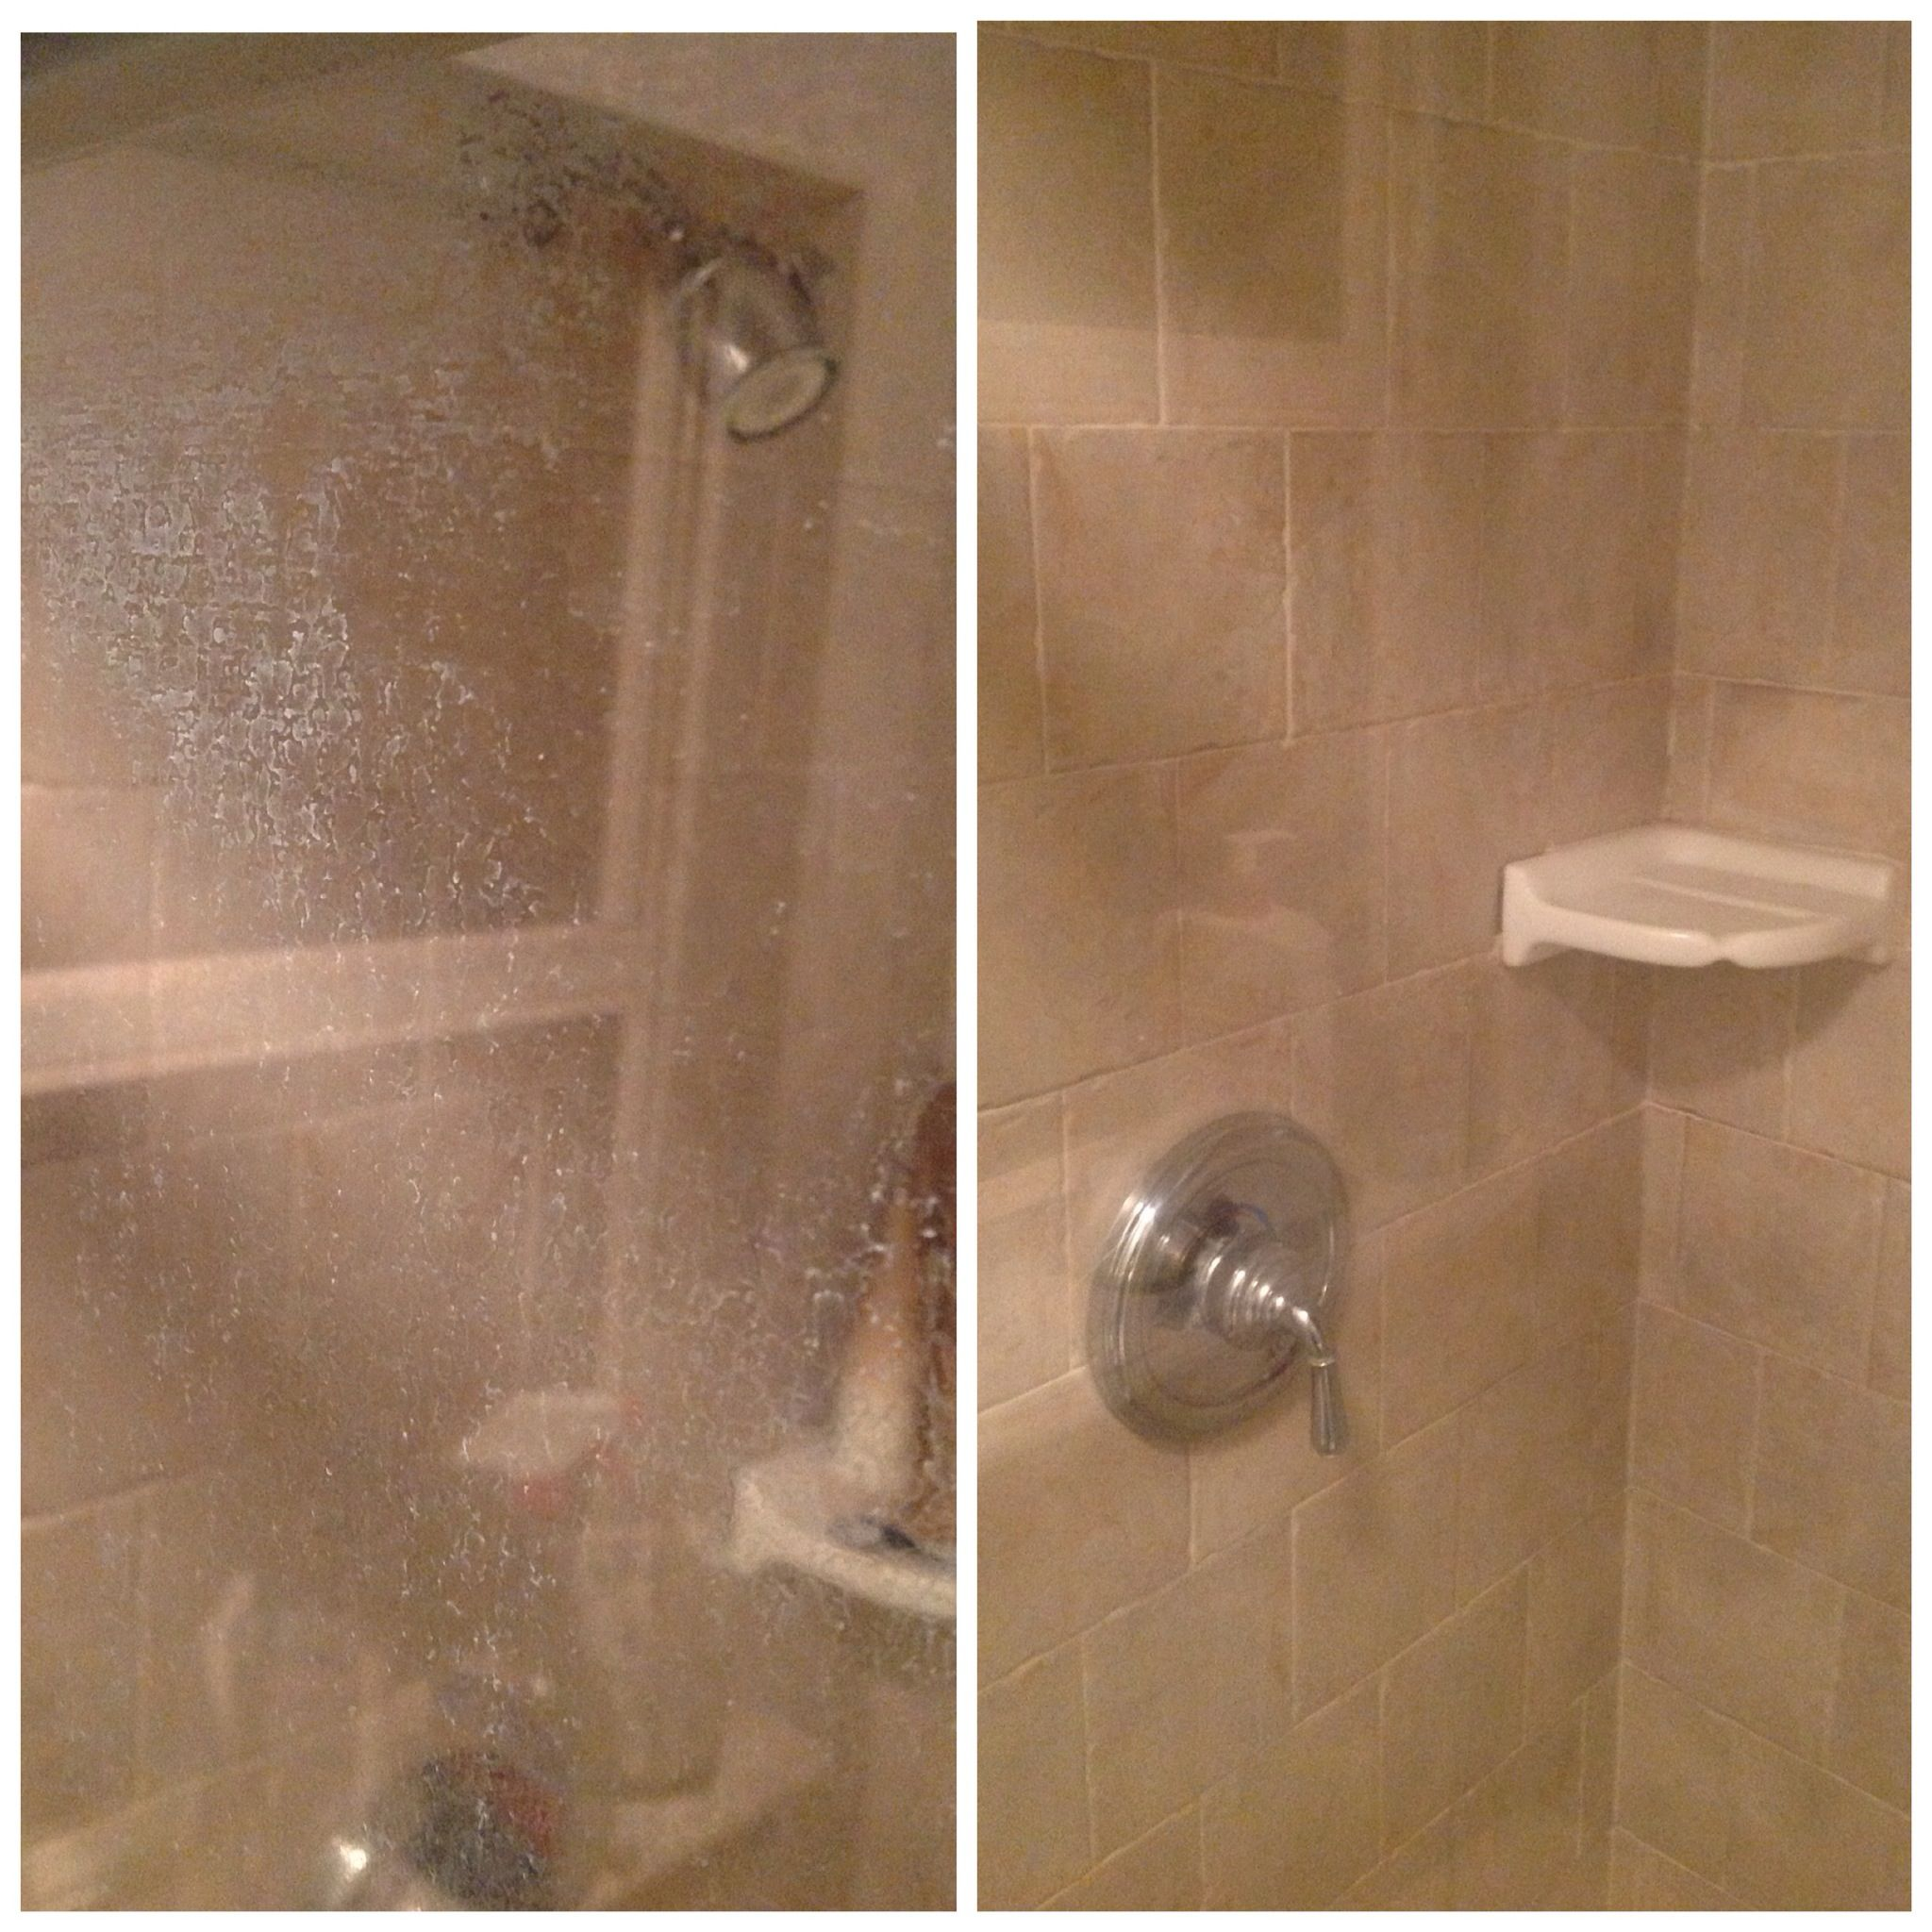 For Erika. My shower doors before and after. Steel wool u0026 Barkeepers Friend & For Erika. My shower doors before and after. Steel wool ...